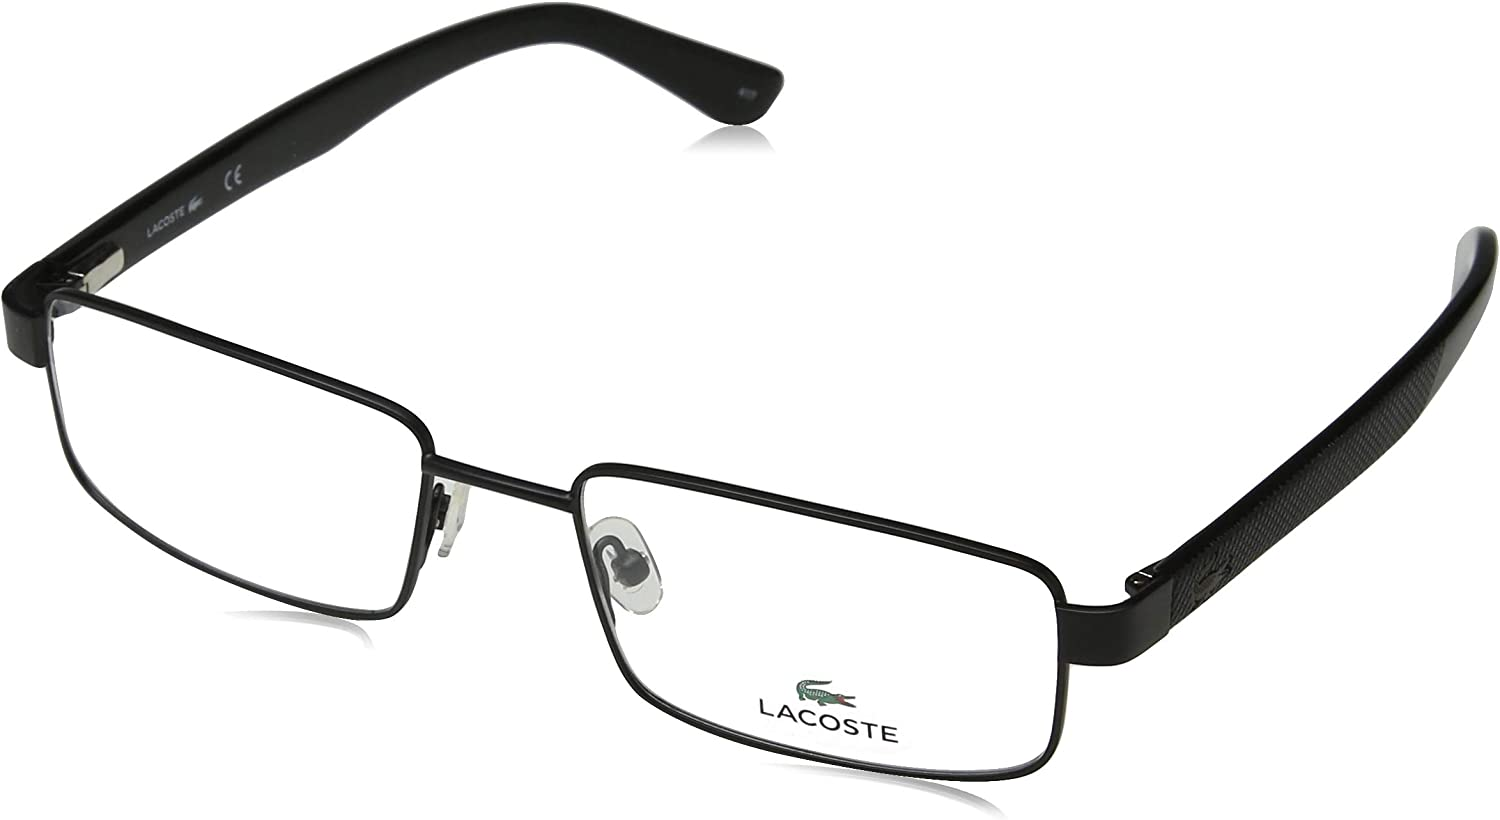 Eyeglasses National products LACOSTE L 2238 Black 002 Matte Tulsa Mall